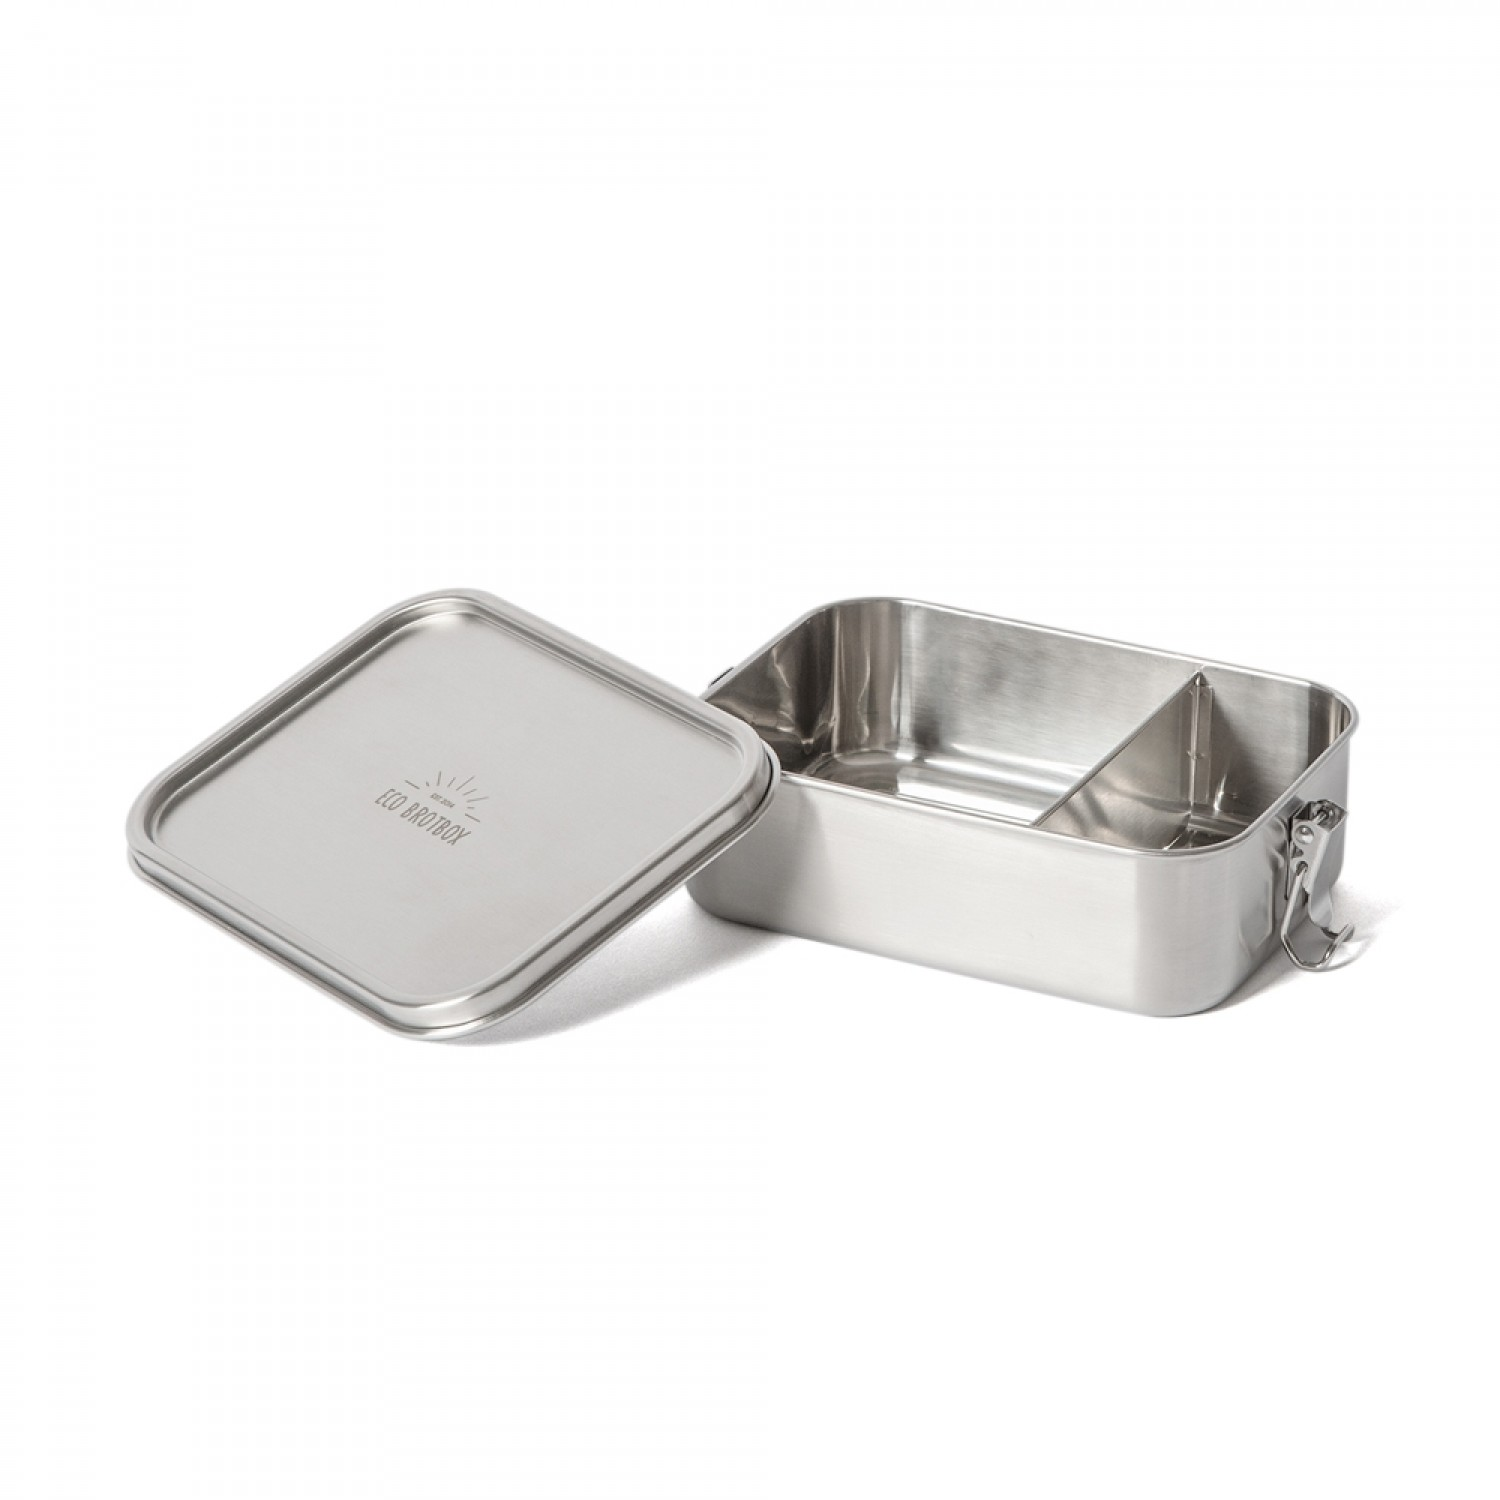 Bento Classic+ stainless steel lunchbox, leakproof with fixed divider